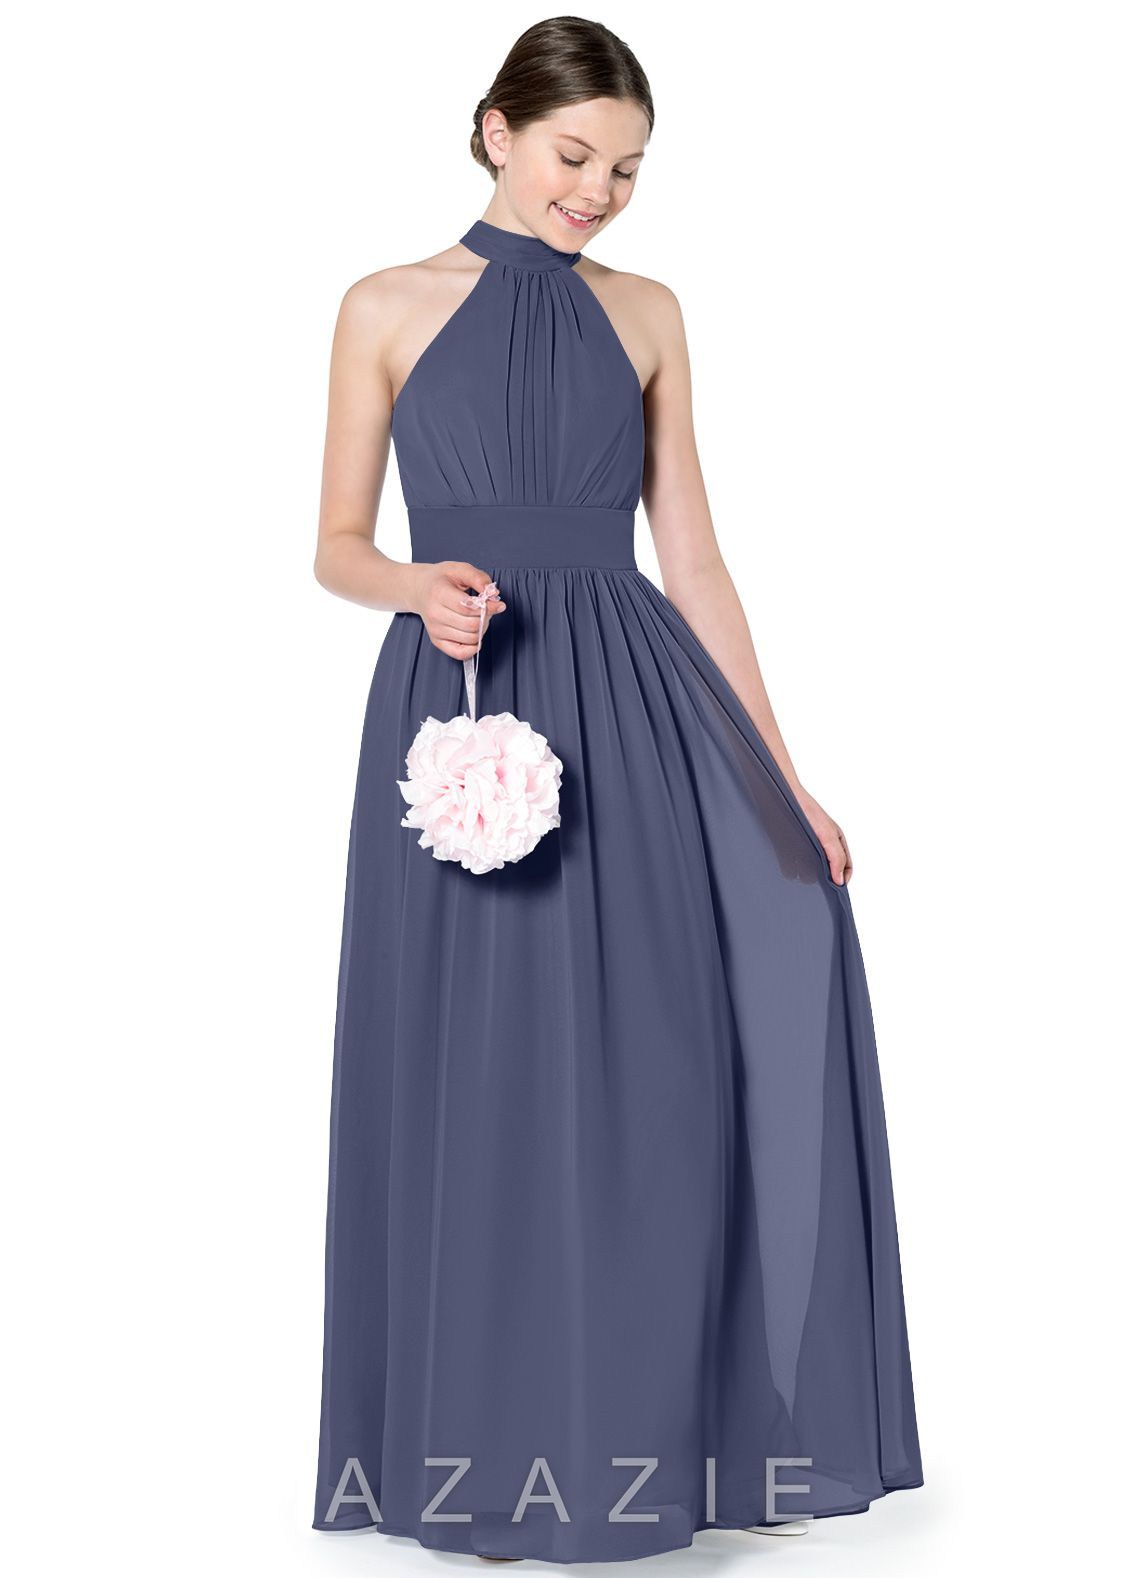 Azazie Iman JBD Junior Bridesmaid Dress |